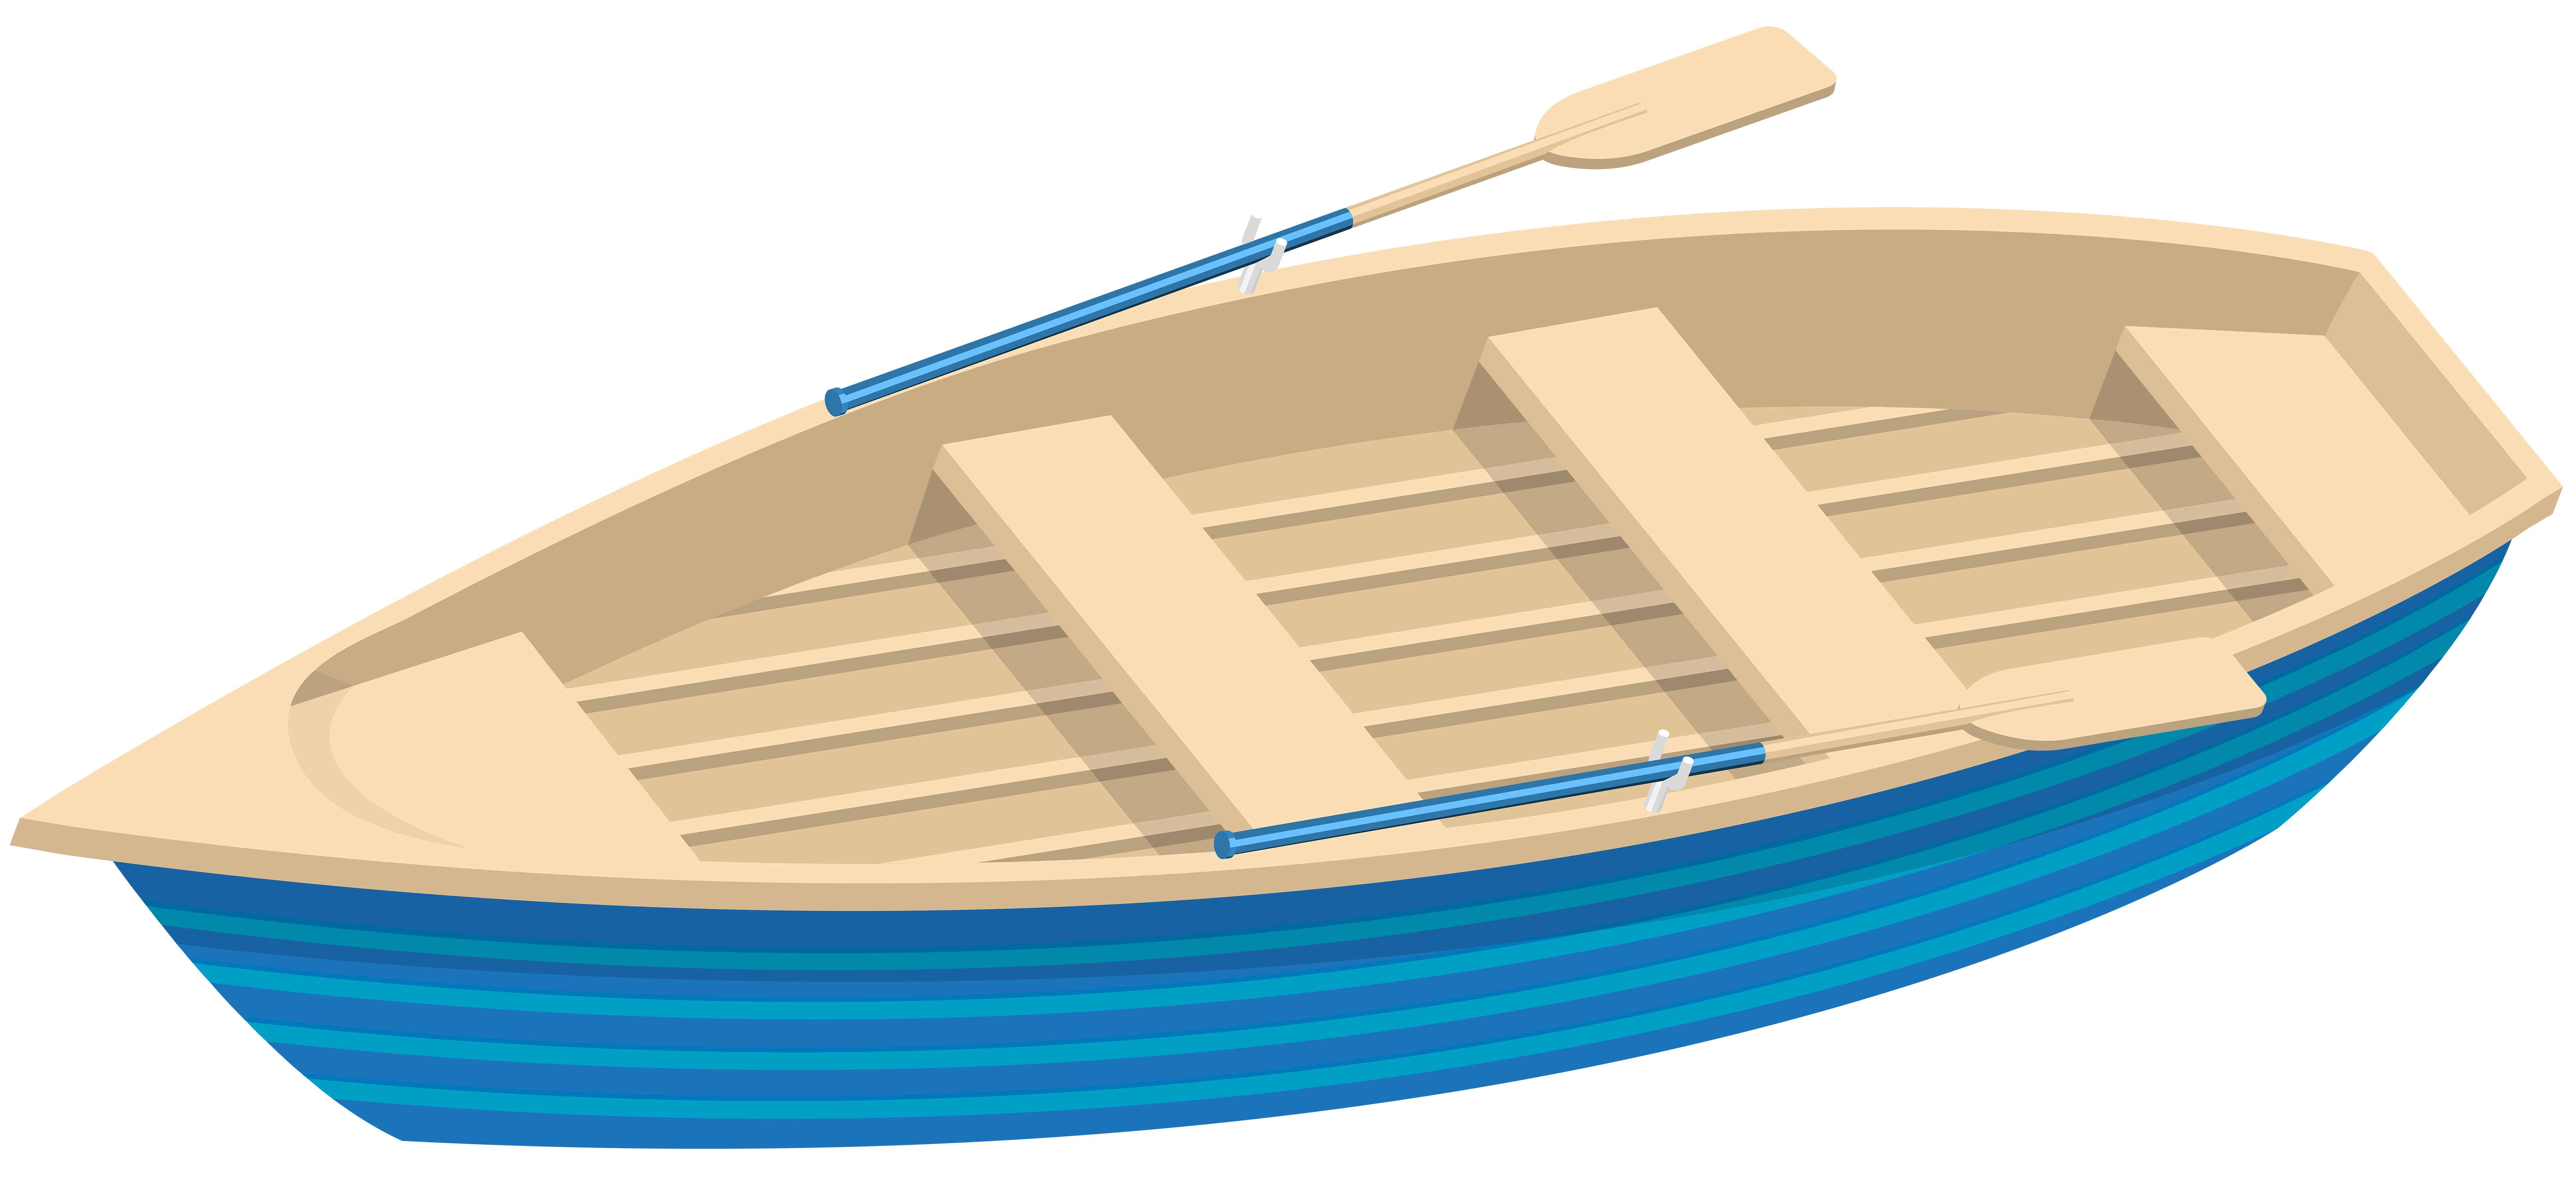 image library Blue Boat Transparent Clip Art Image